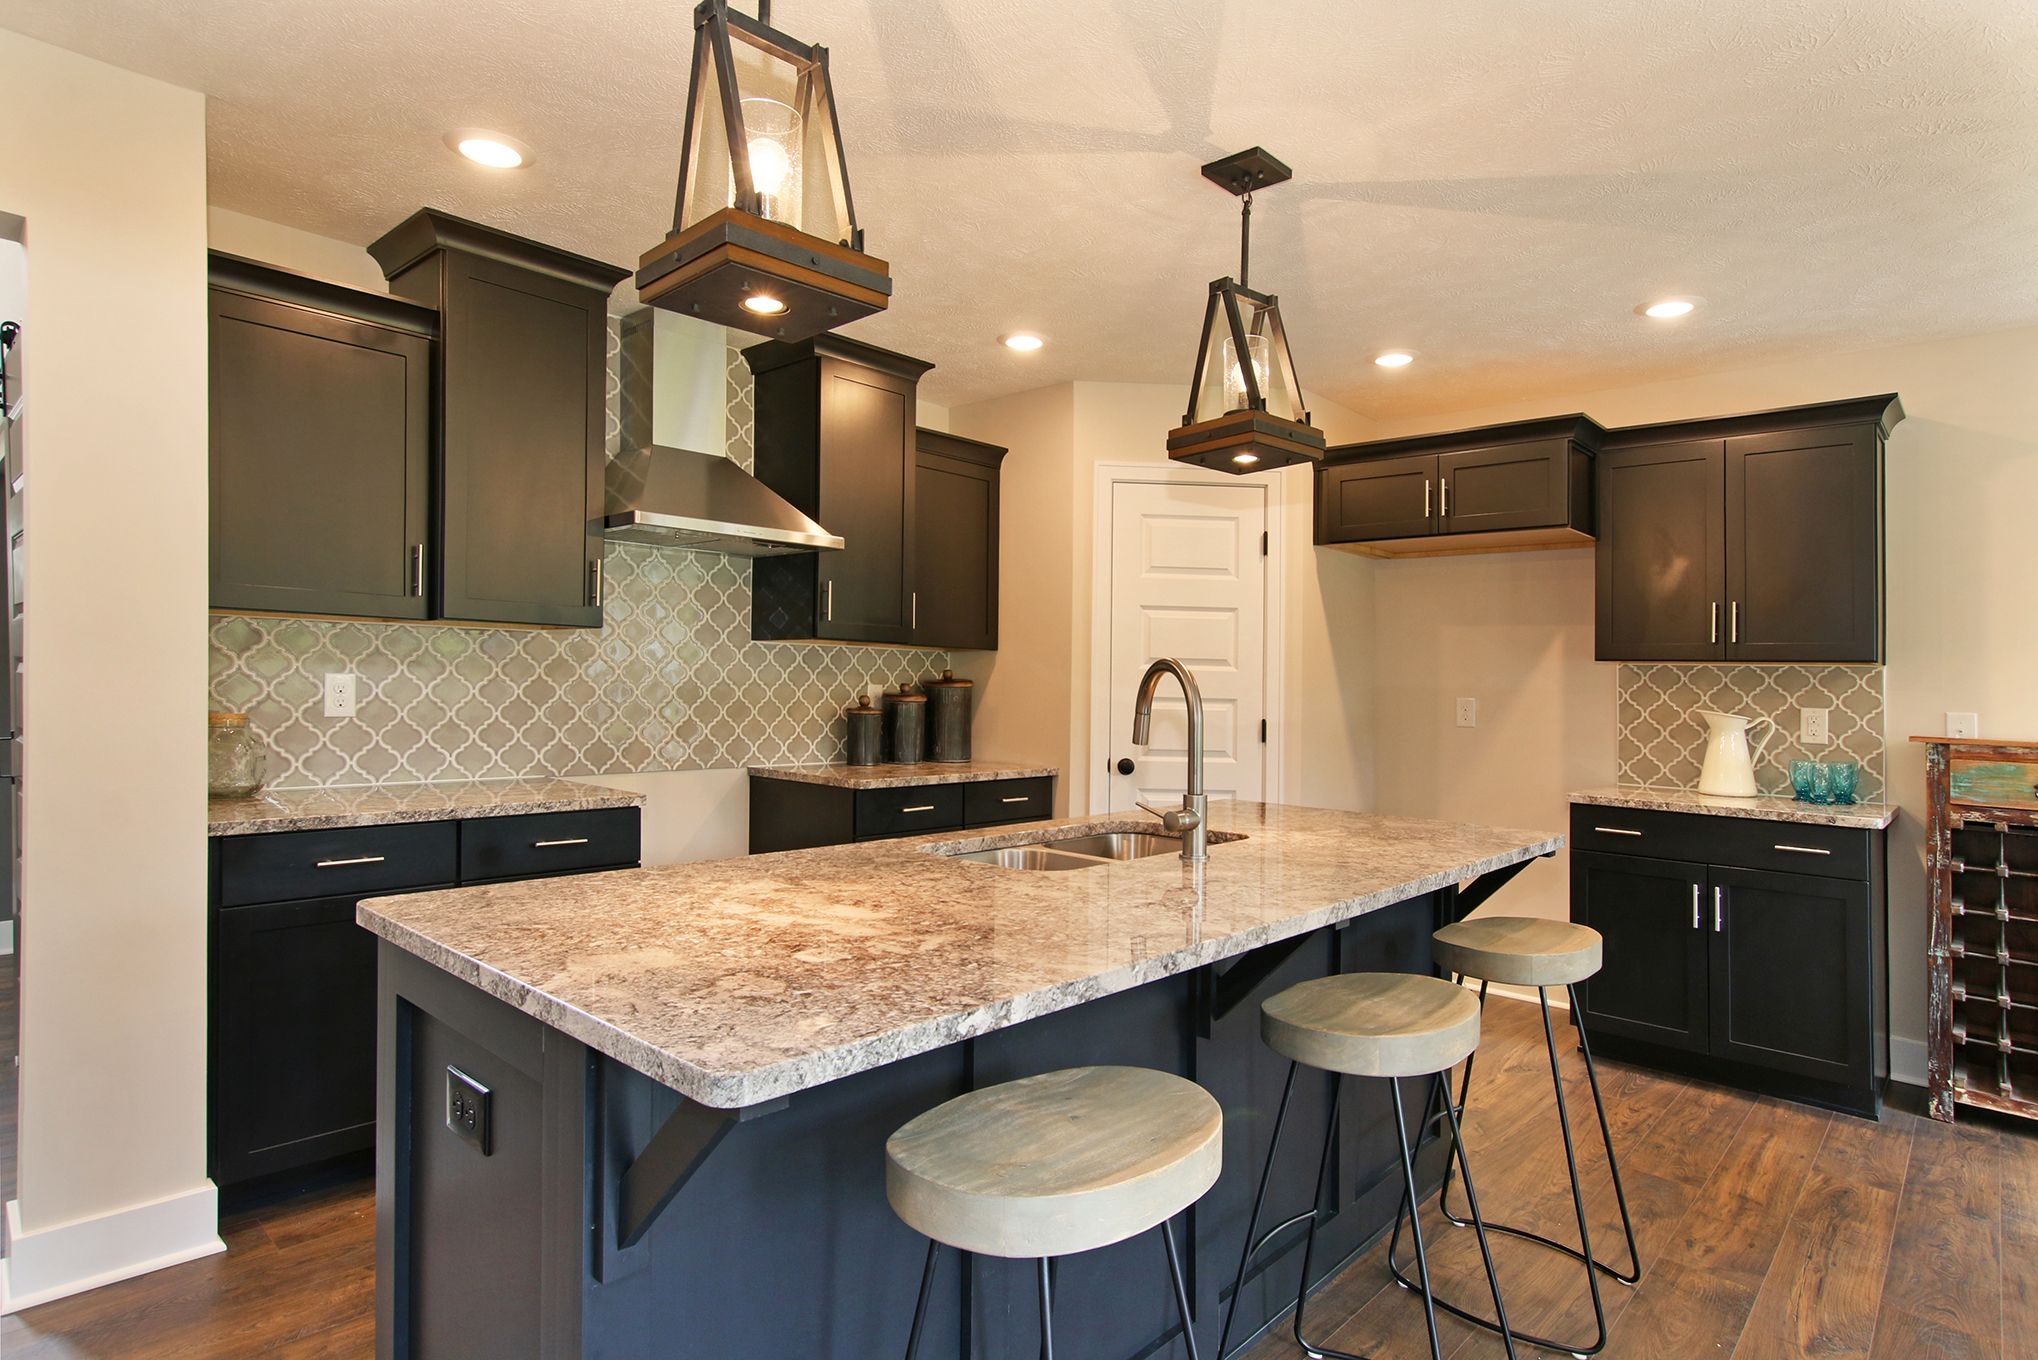 Kitchen featured in The Hadley By Eastbrook Homes Inc. in Grand Rapids, MI